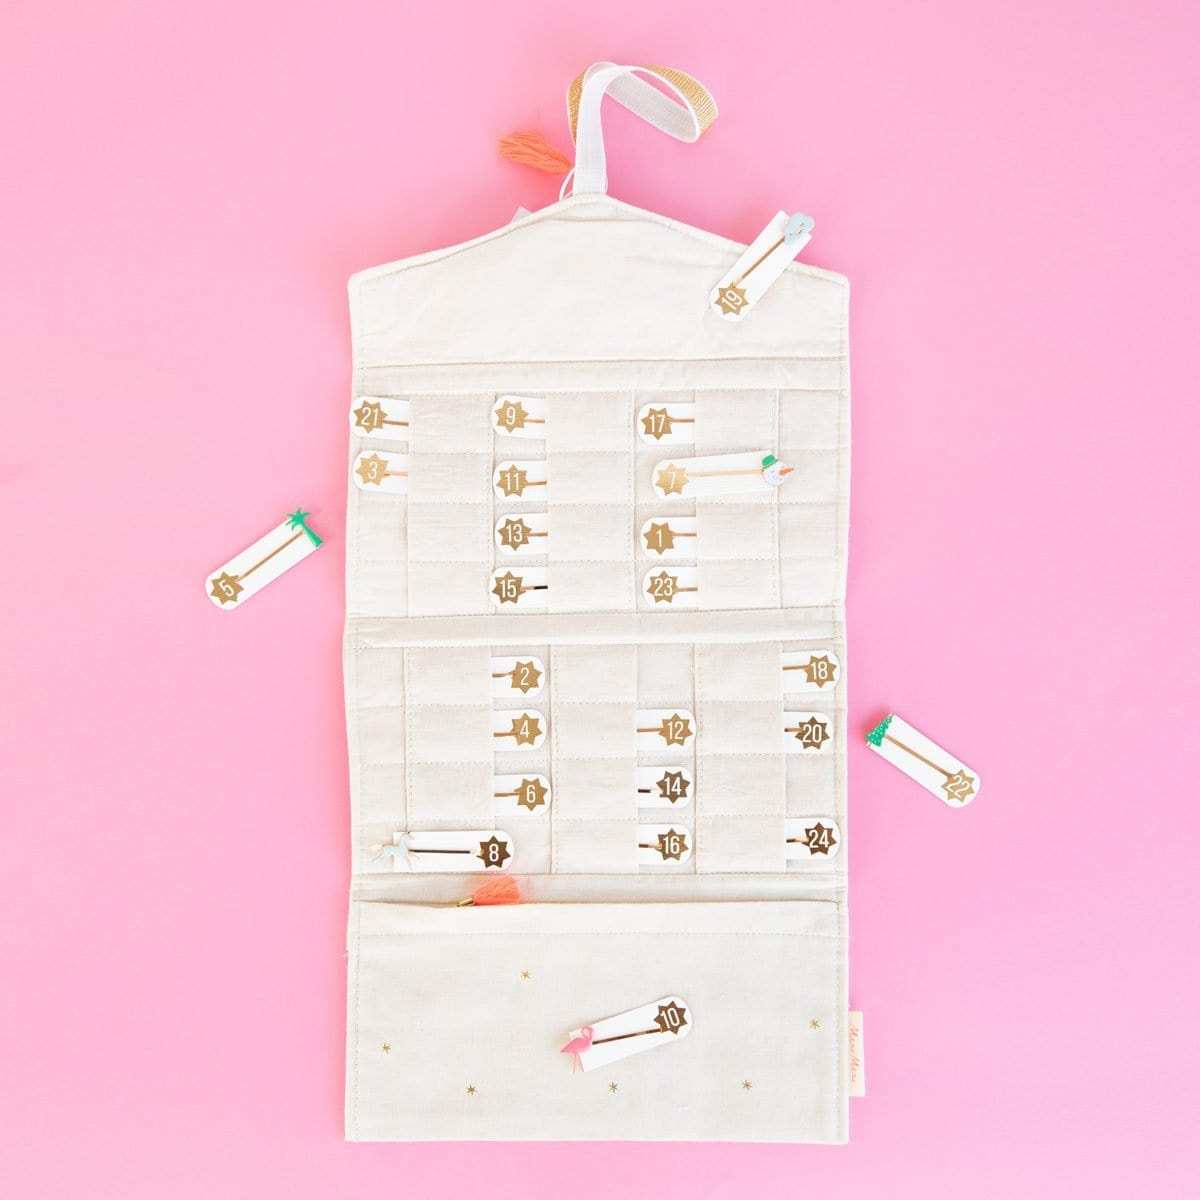 Enamel Hairslide Advent Calendar